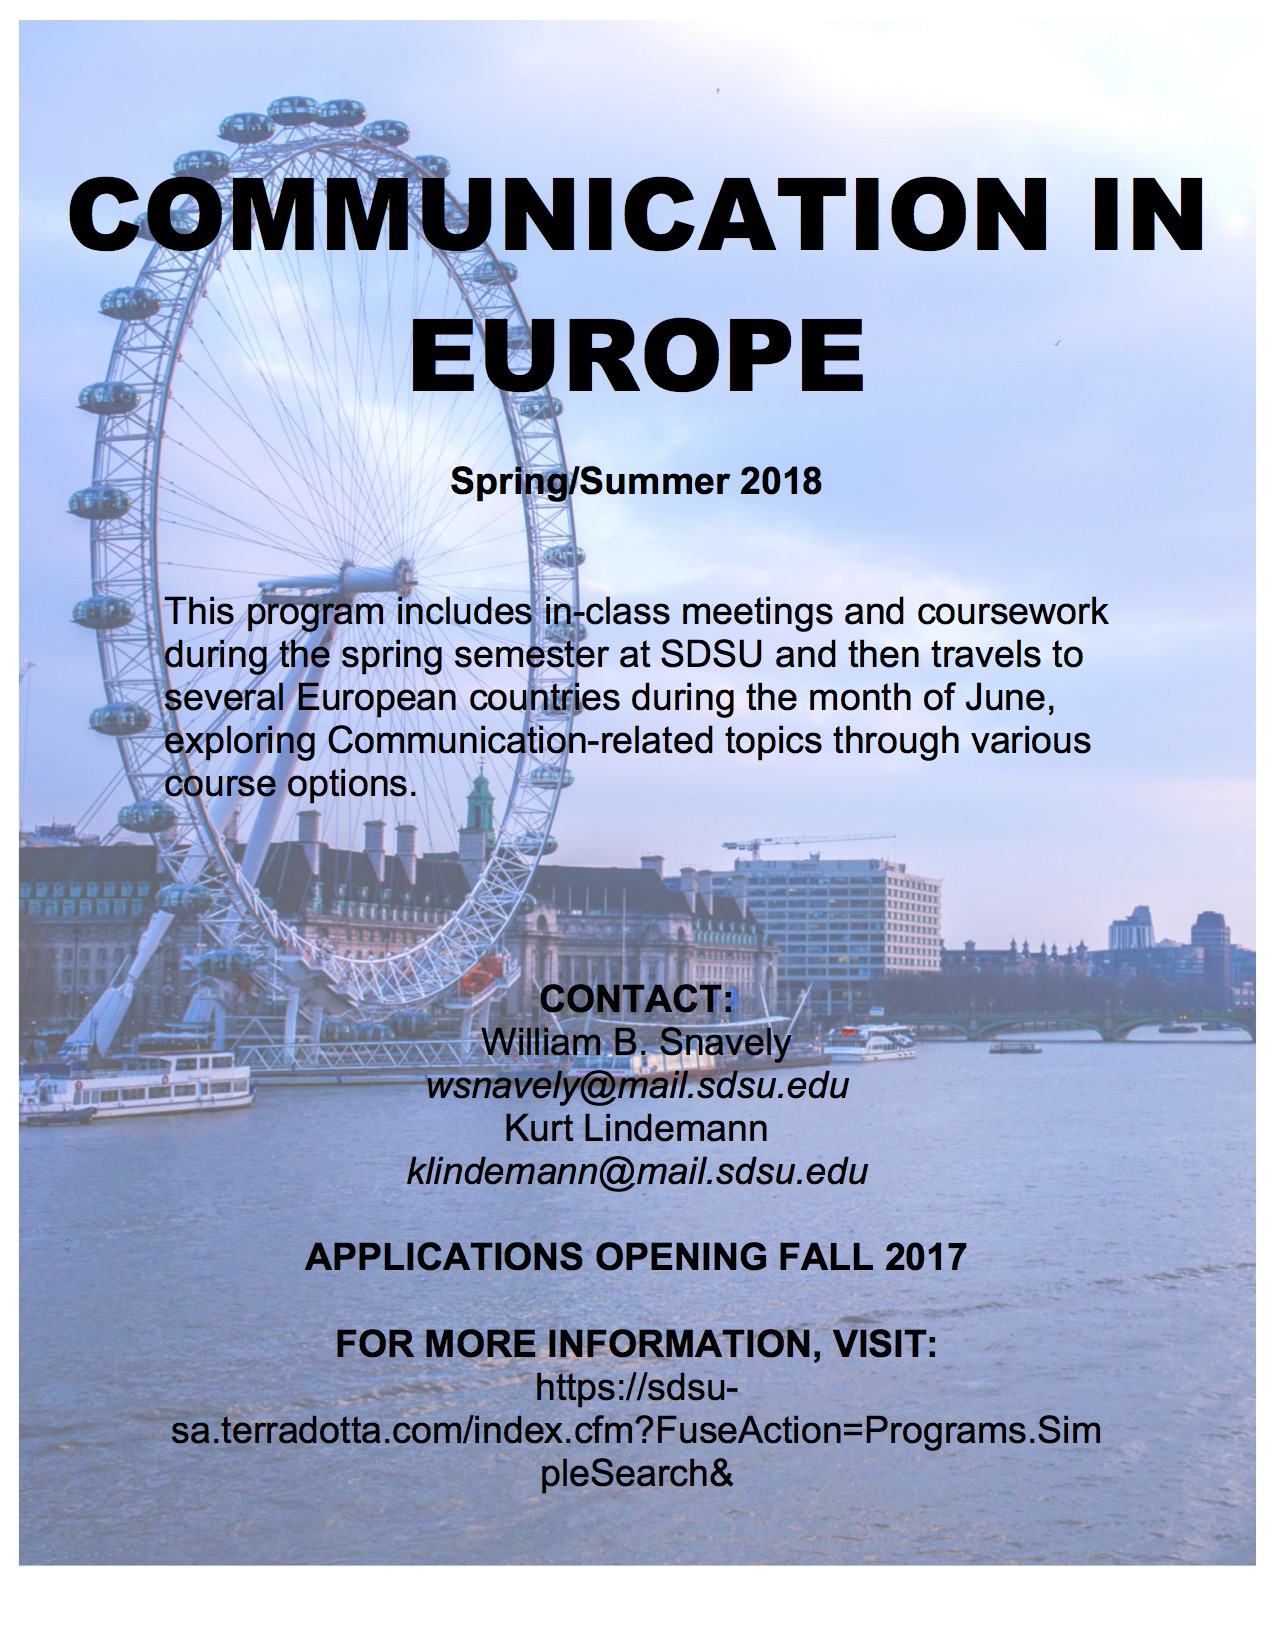 Communication Summer in Europe